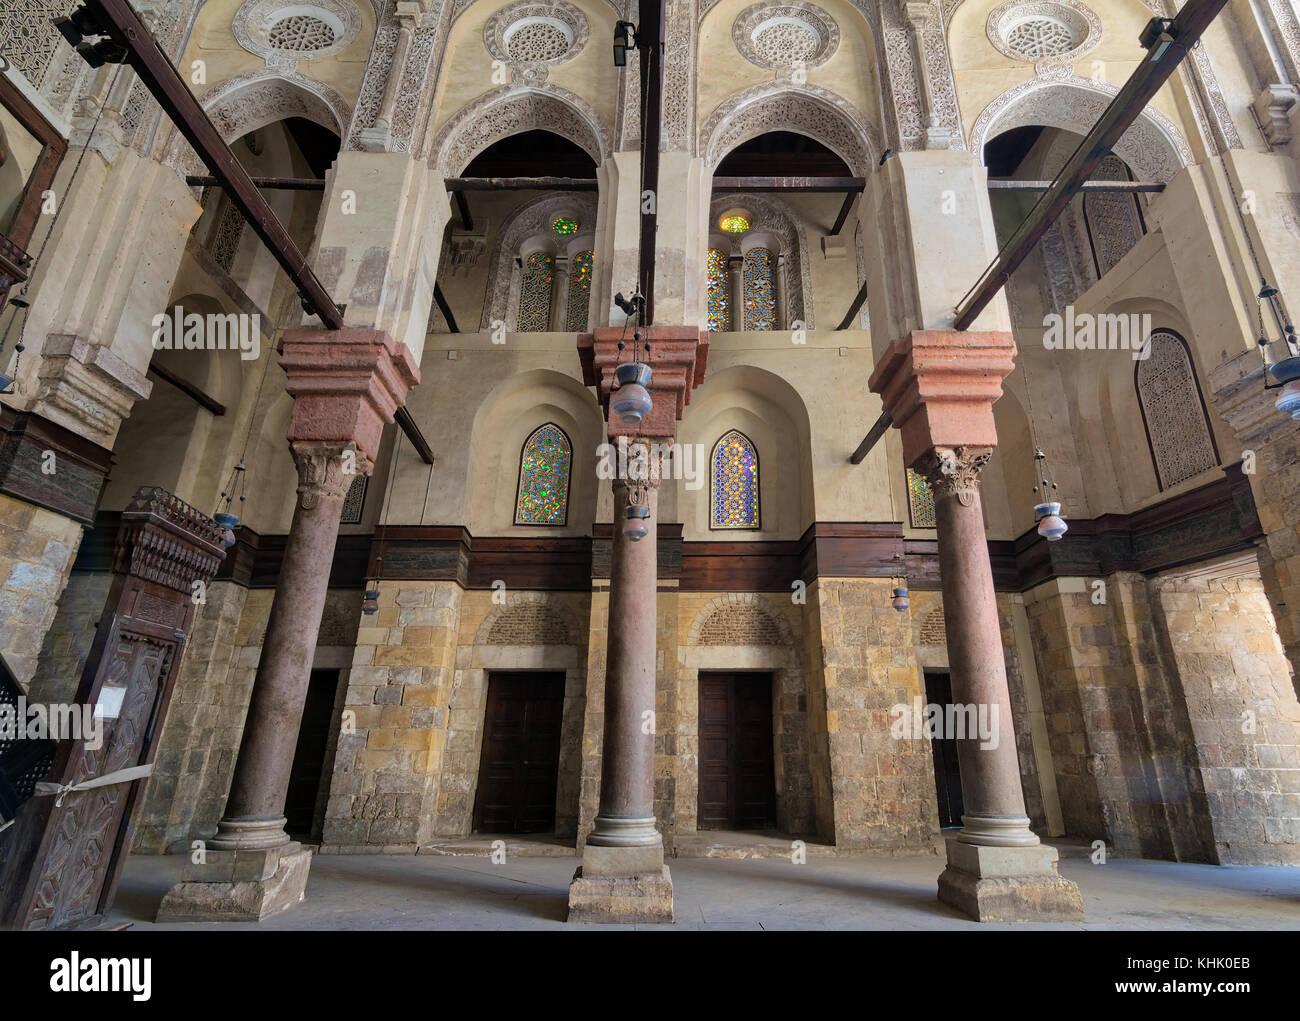 Interior of Sultan Qalawun Mosque with stone columns, colored stained glass windows and wooden doors, Cairo, Egypt - Stock Image